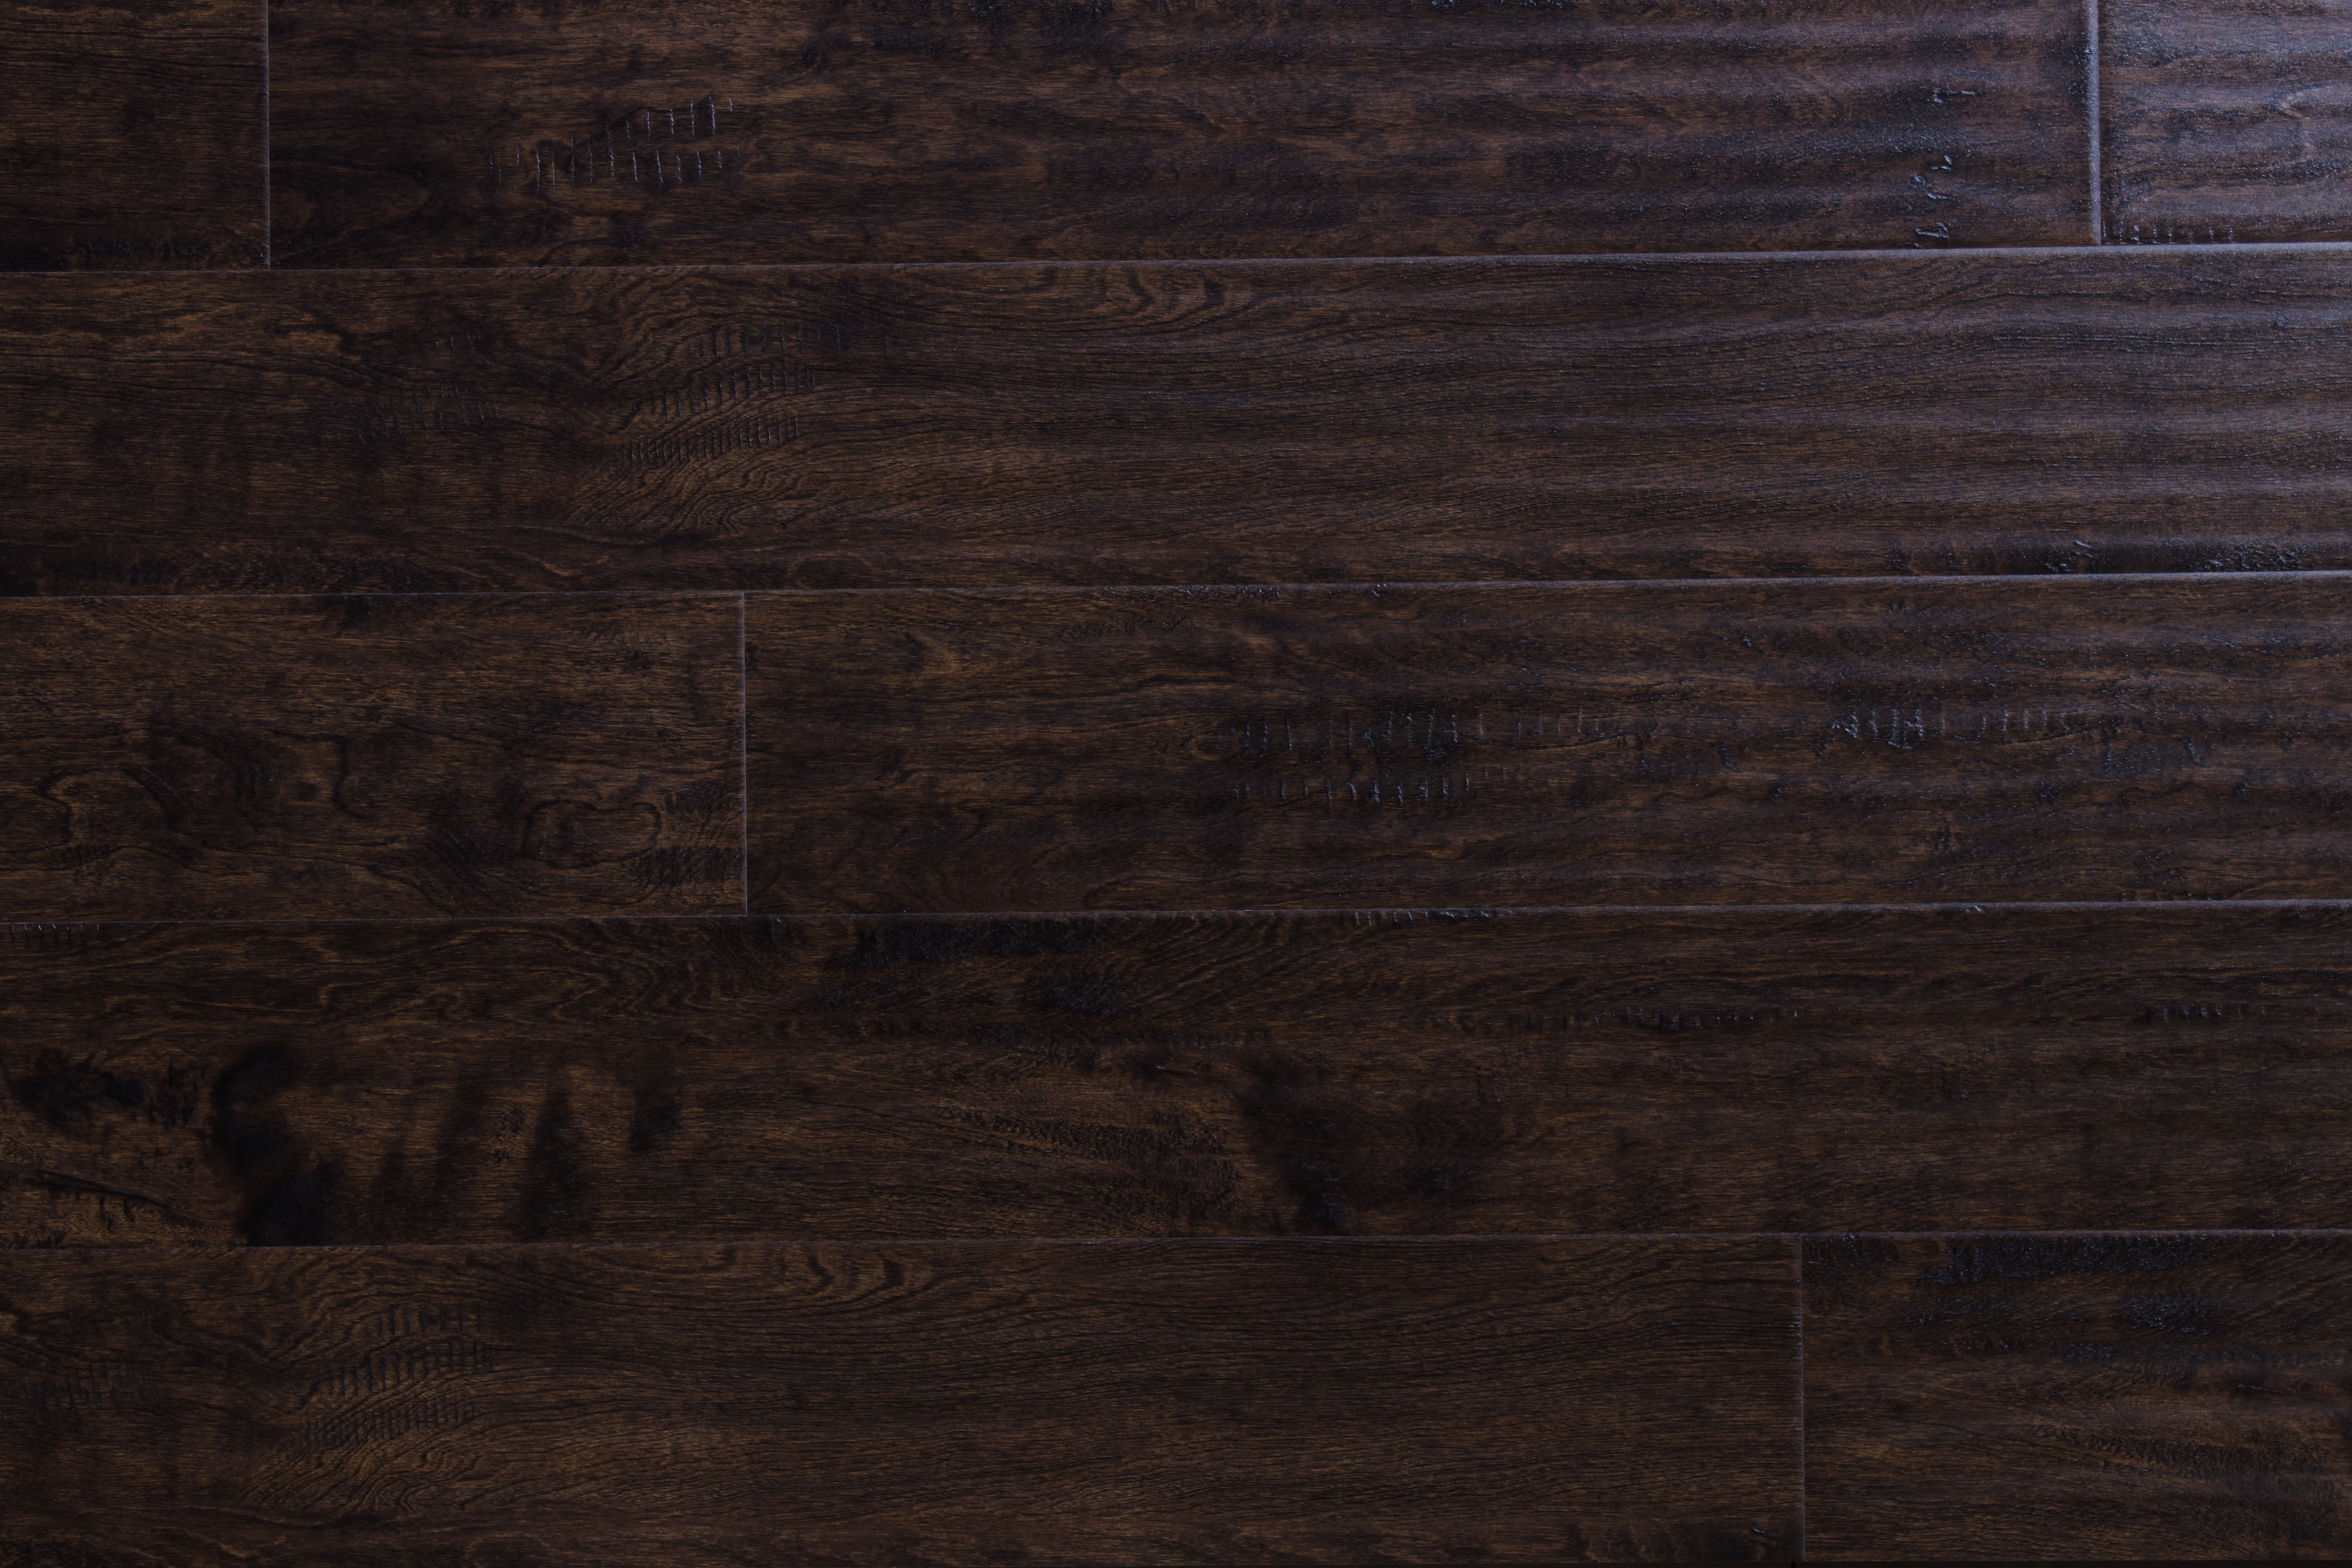 hickory hardwood flooring cost of wood flooring free samples available at builddirecta inside tailor multi gb 5874277bb8d3c